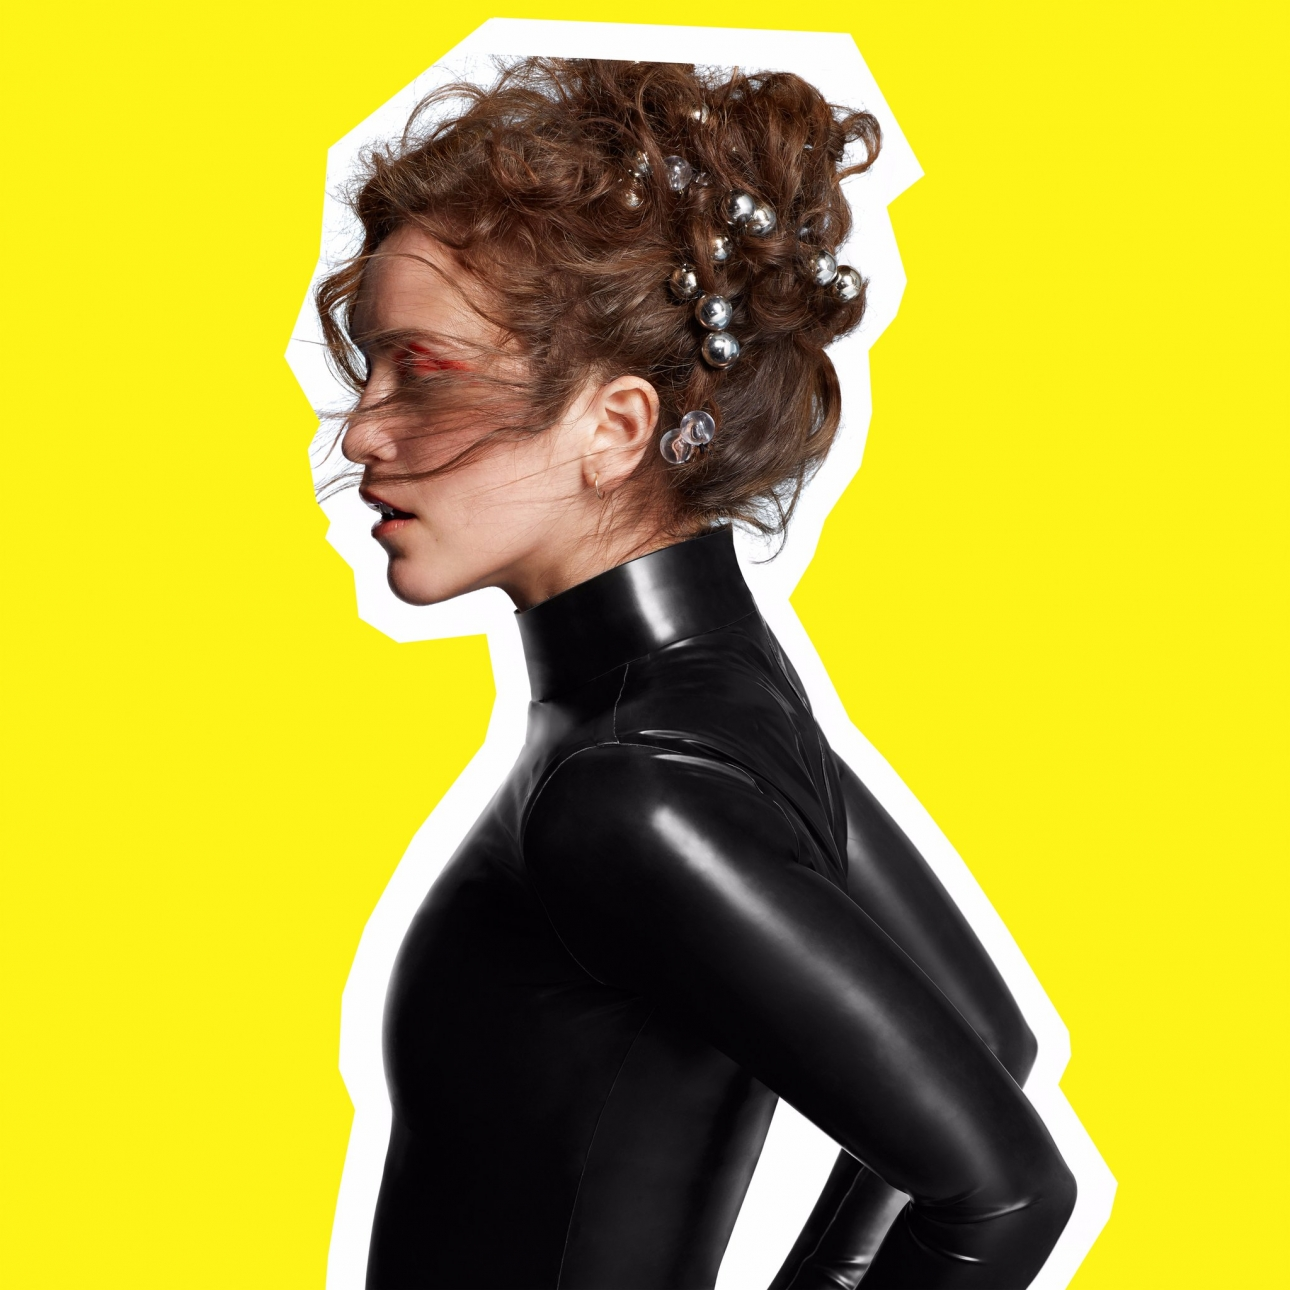 rae_morris_someone_out_there_artwork_1290_1290.jpg